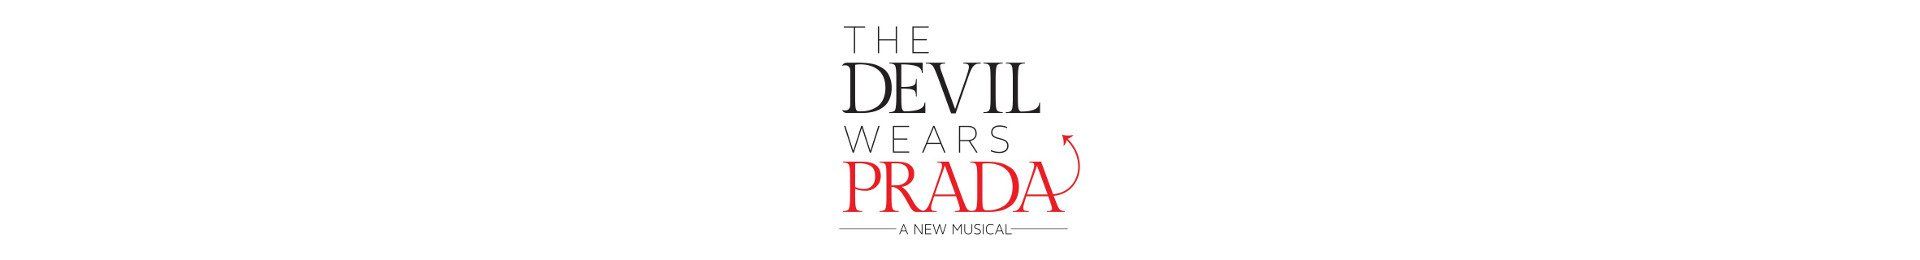 The Devil Wears Prada banner image